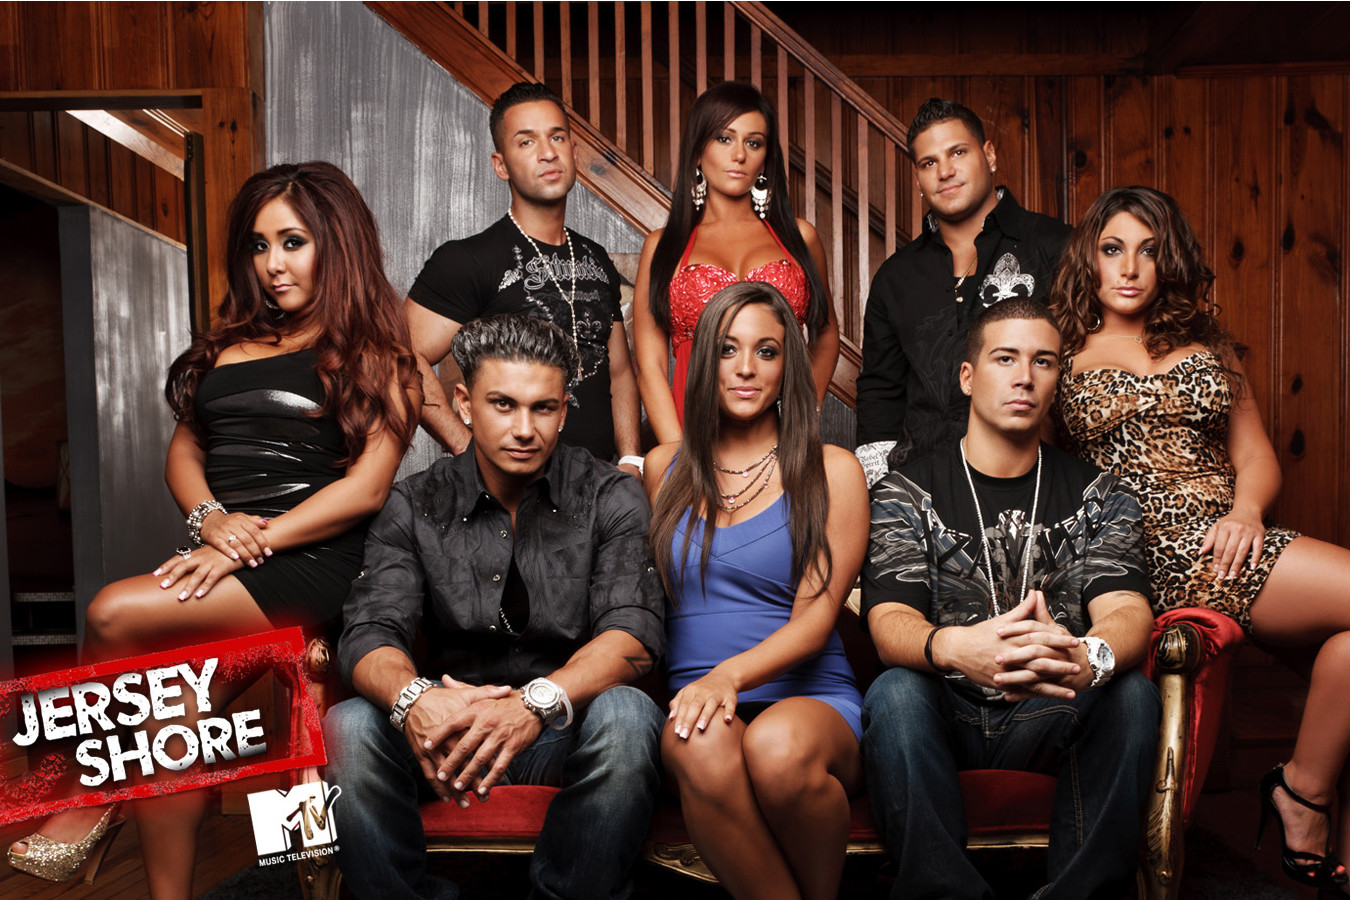 Get Those Fists Pumping Because The Jersey Shore Is Back